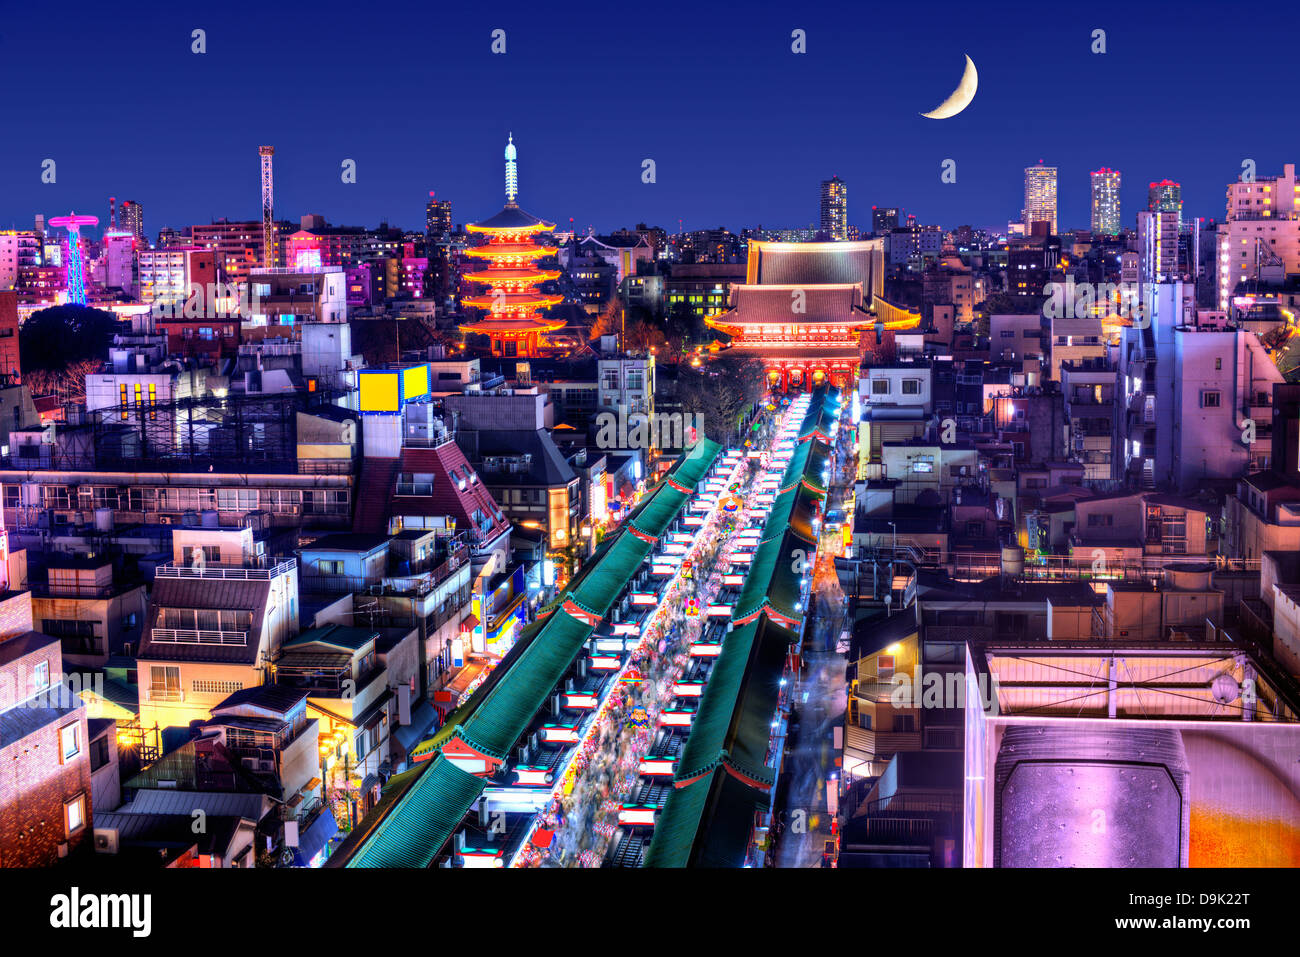 Skyline of the Asakusa District in Tokyo, Japan with famed temples. - Stock Image